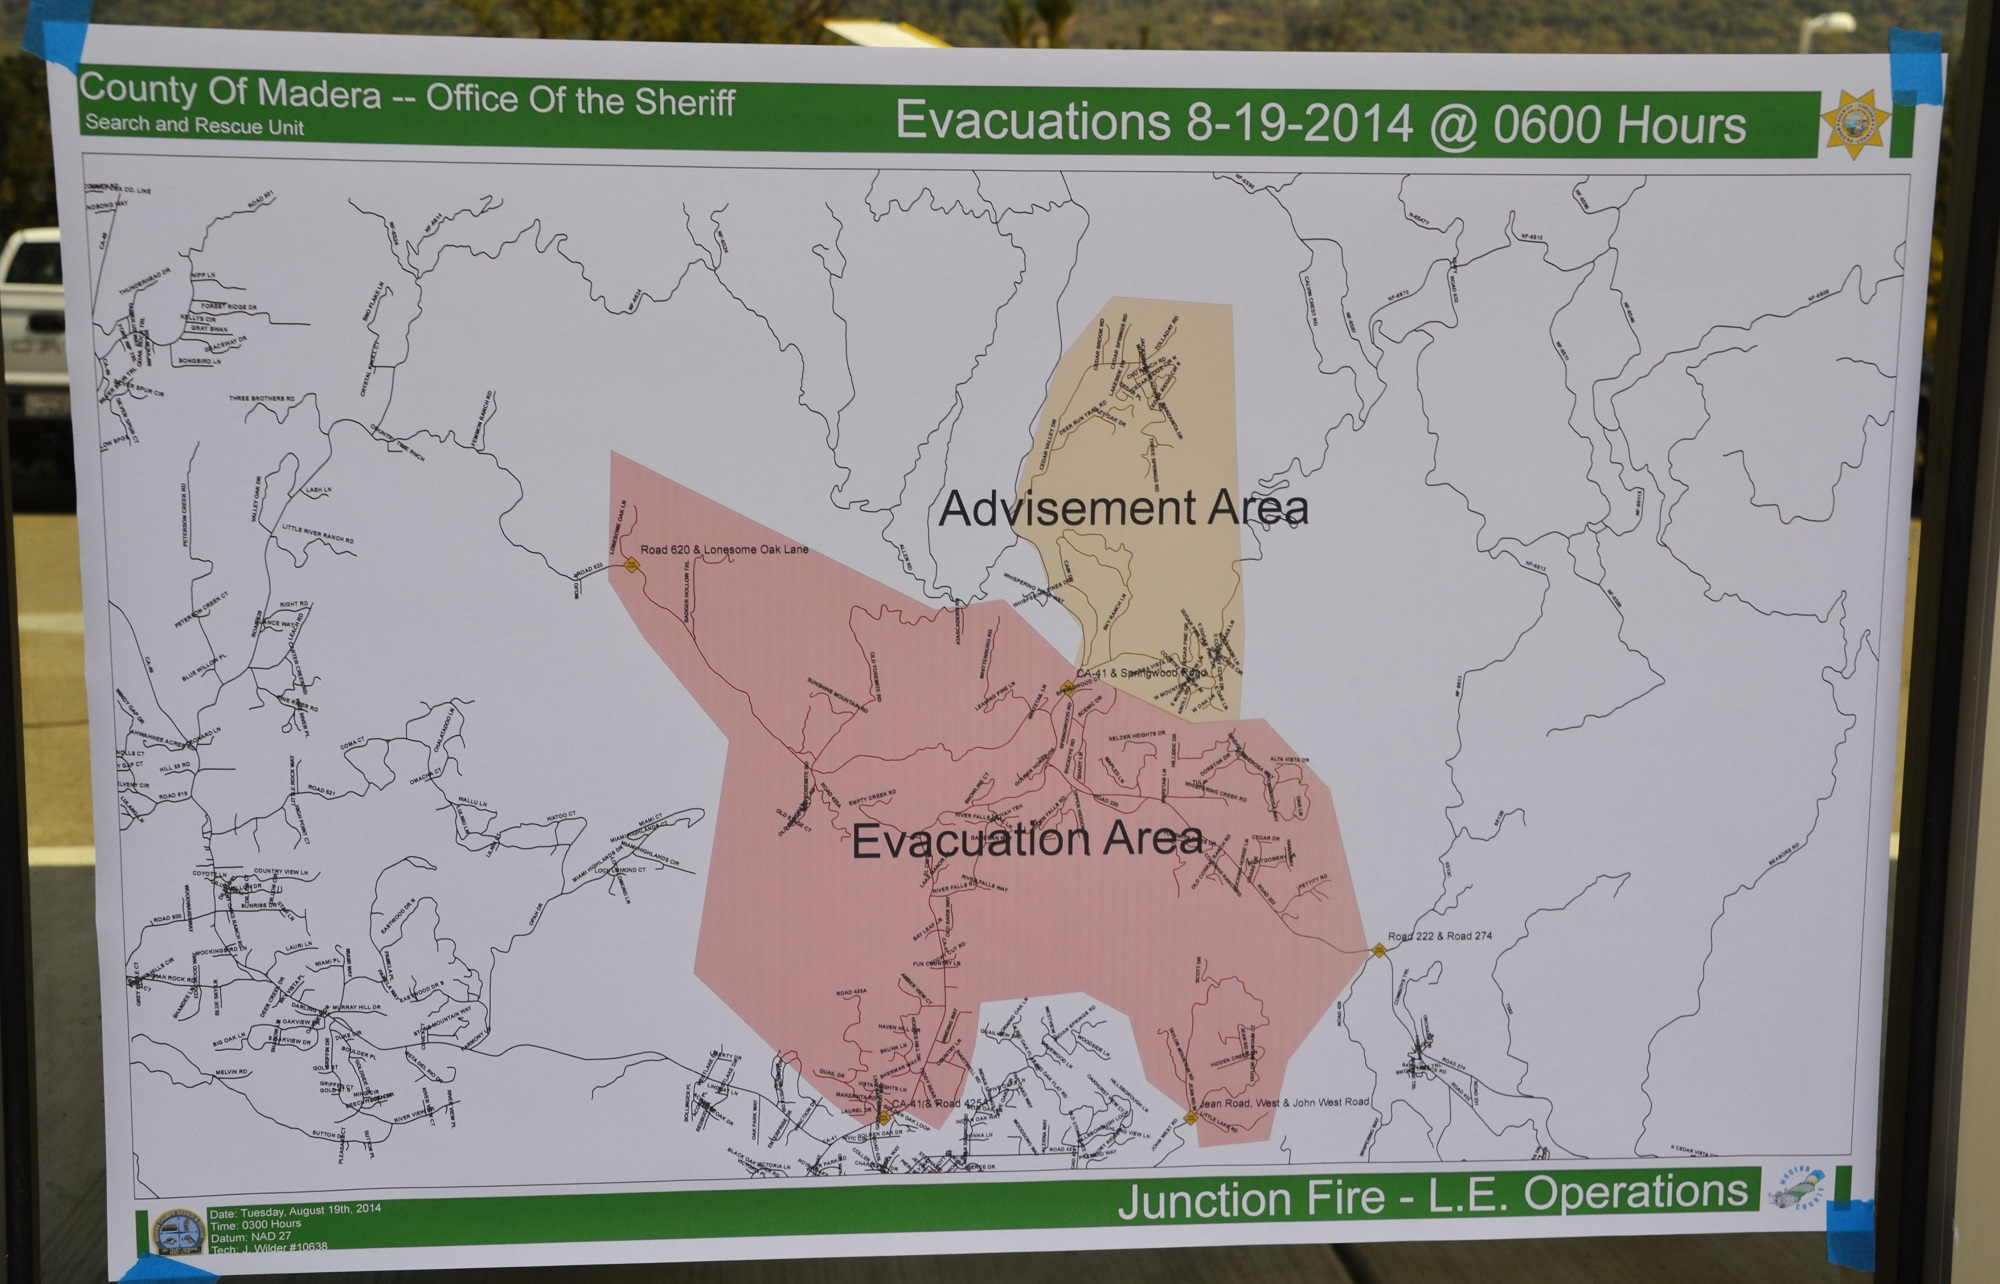 Evacuation and Advisement Area map Junction Fire 8-19-14